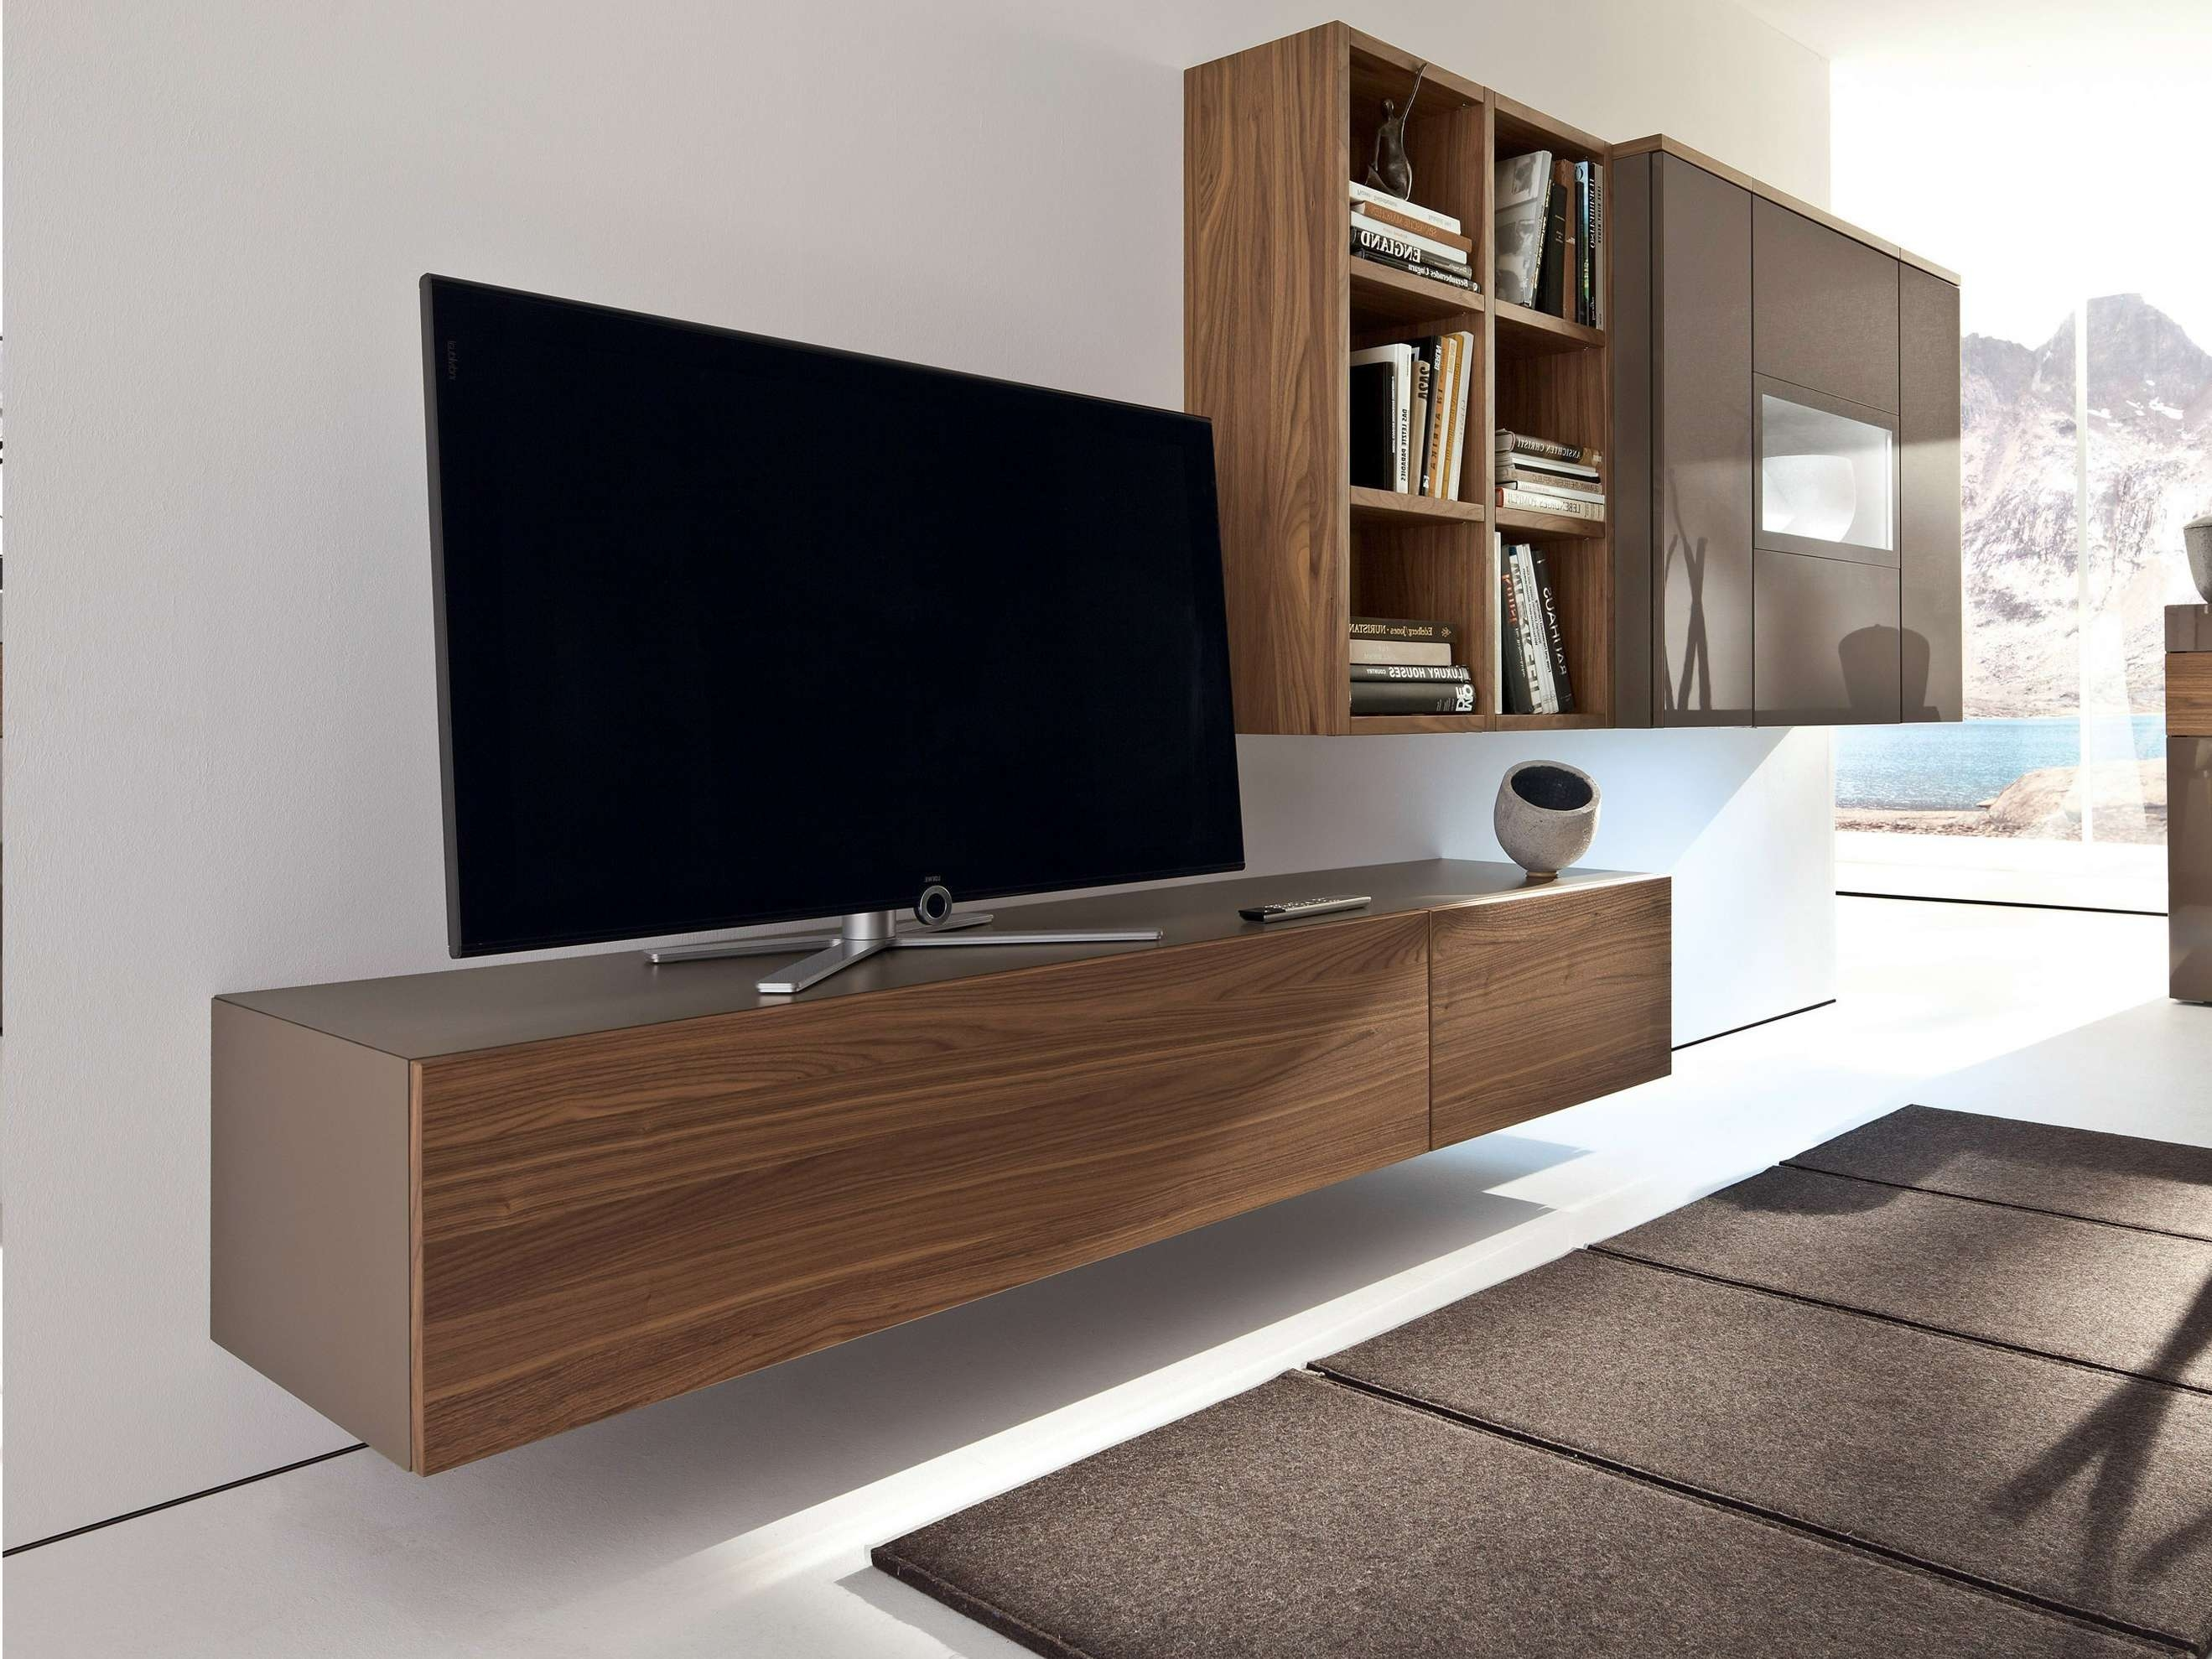 Wall Mounted Media Cabinet With Doors Brown Ebony Hardwood Within Tv Cabinets With Storage (View 19 of 20)